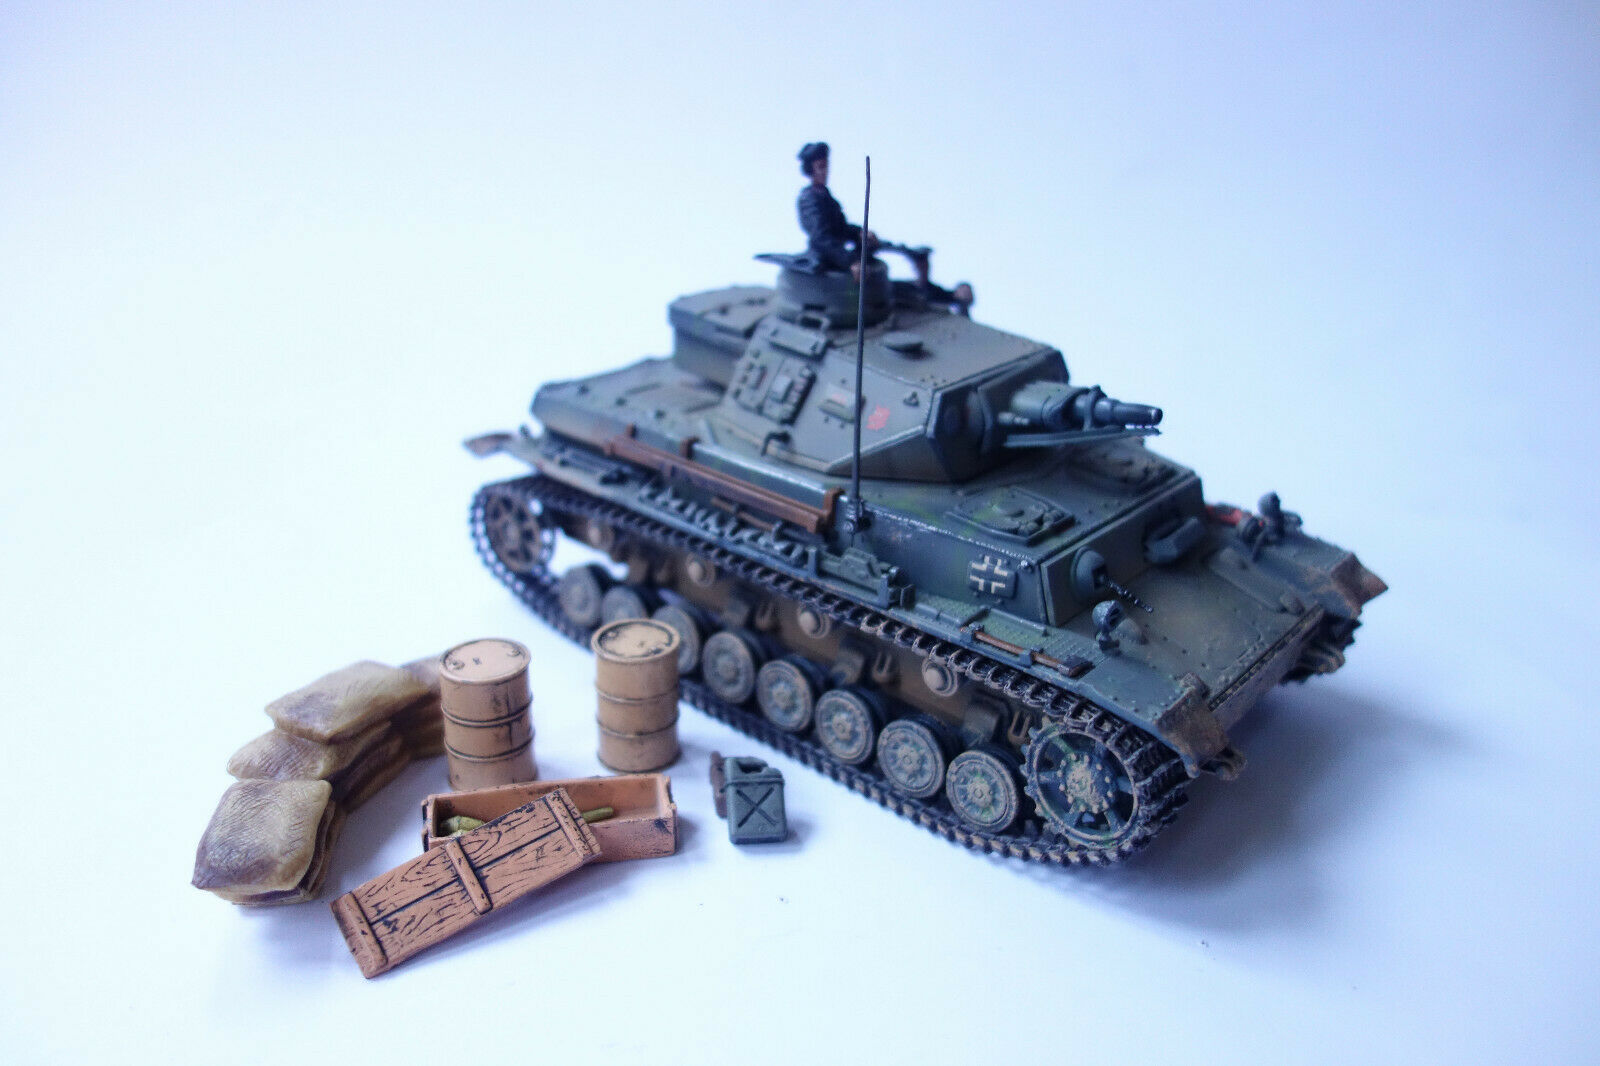 Unimax Forces of Valor Miniature Gerhomme Panzer IV  Exéc. F, 1 32 80017  magasin discount